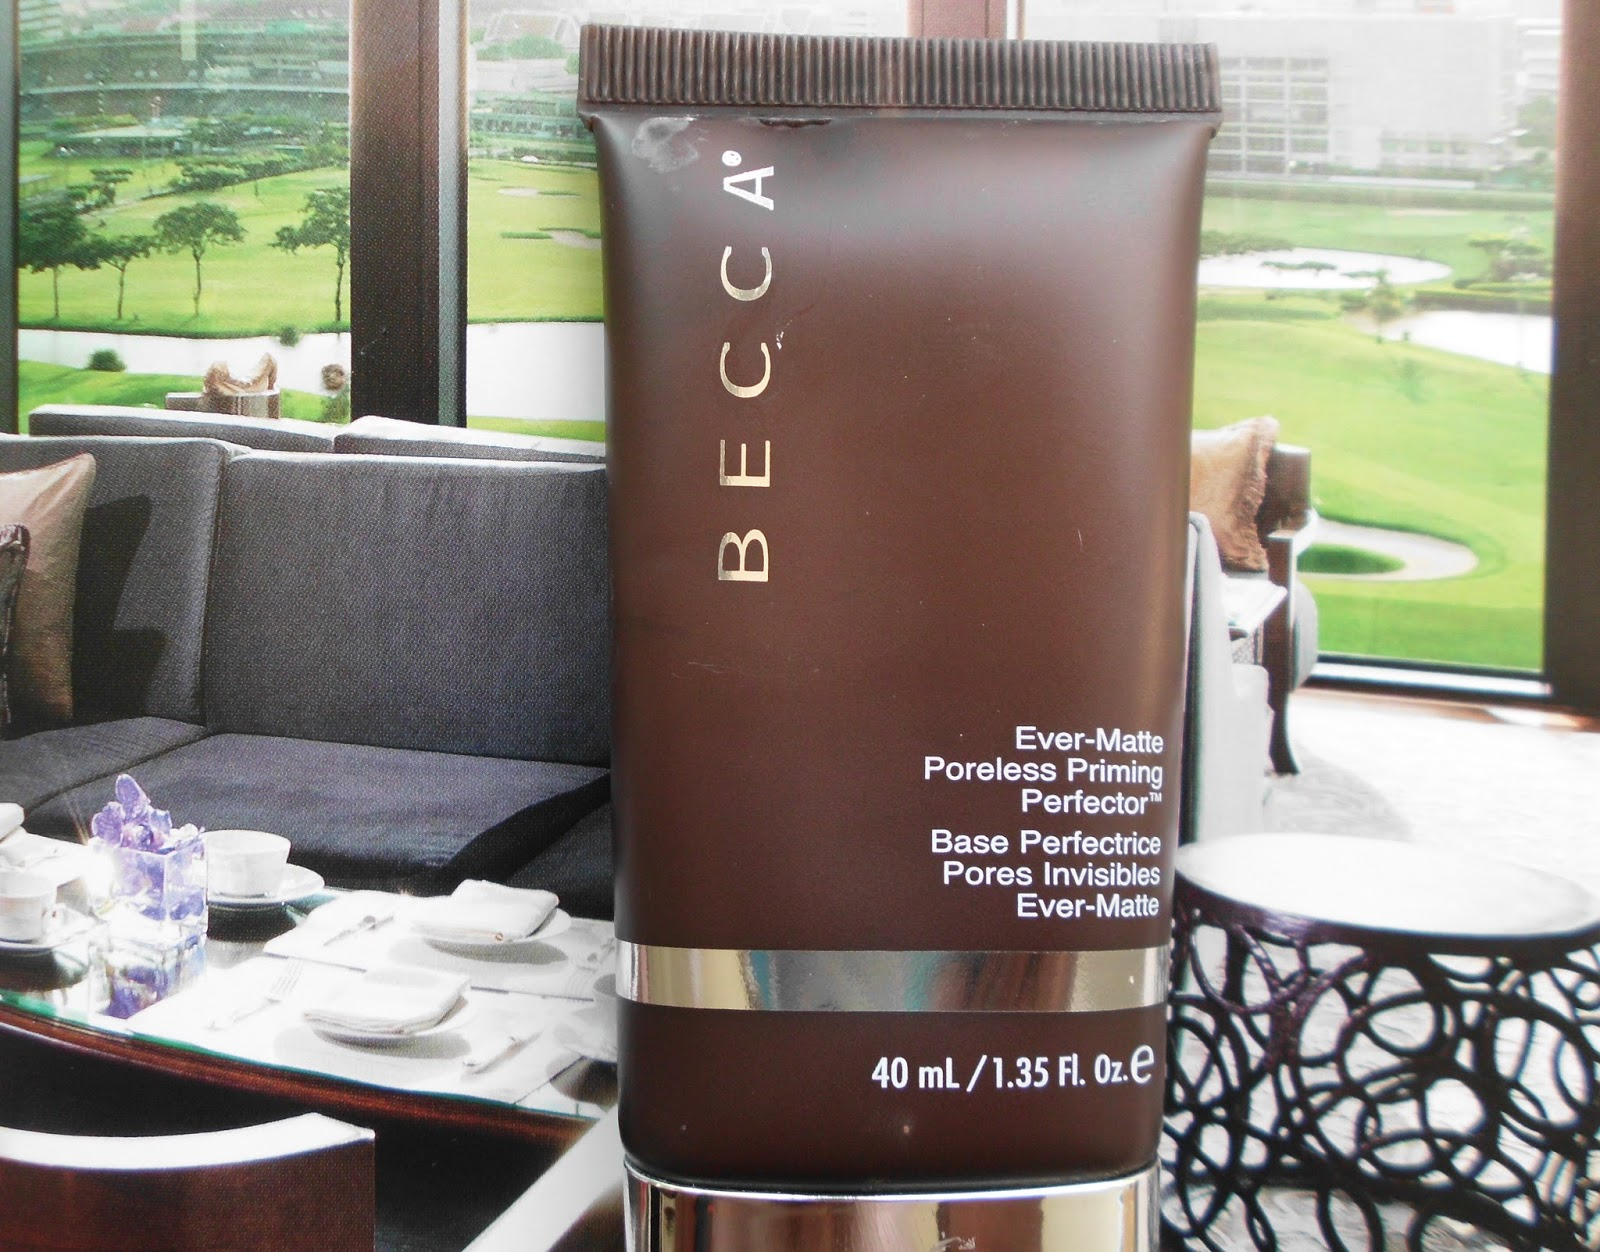 BECCA Ever-Matte Poreless Priming Perfector | bellanoirbeauty.com